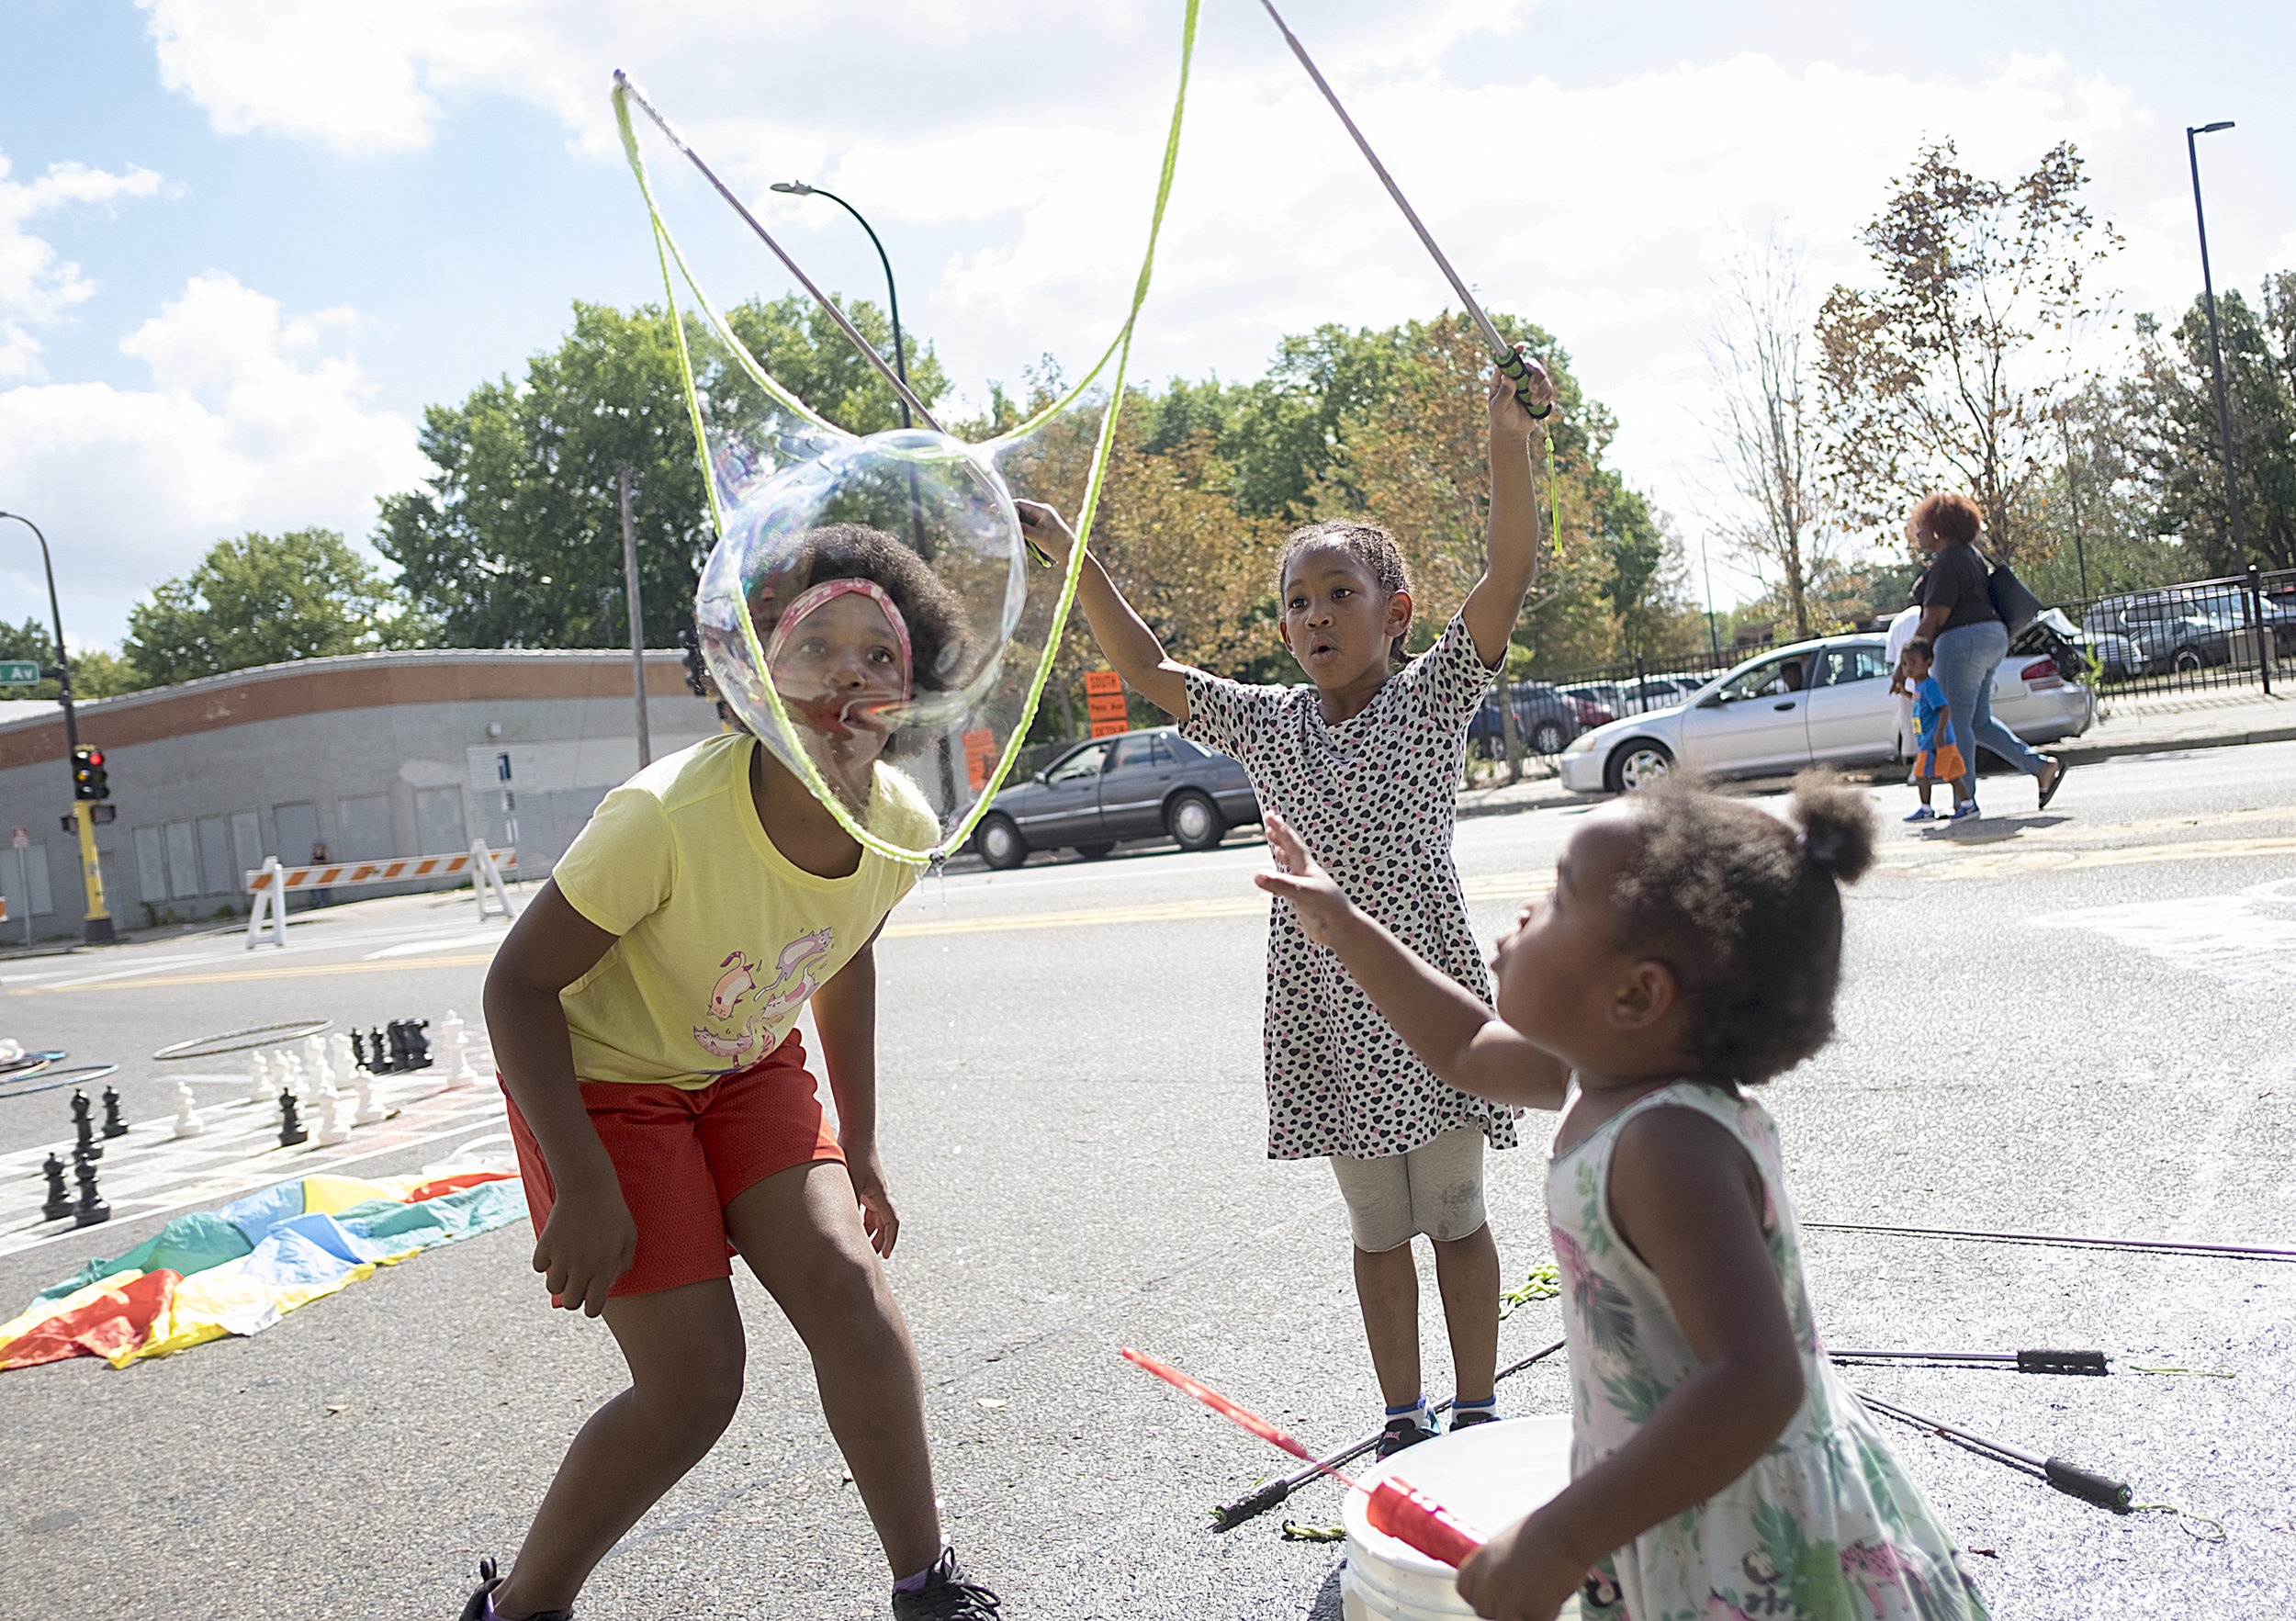 A late summer blast of heat did little to keep people from singing, dancing and laughing with friends and family on Saturday, Sept. 15 during West Broadway Open Streets. Here, Lynea Brown, 10, left, blows to release a soapy bubble drawn by her sister, Georgia, 7, while younger sister Korva reaches out to touch it on the corner of Broadway and Knox.